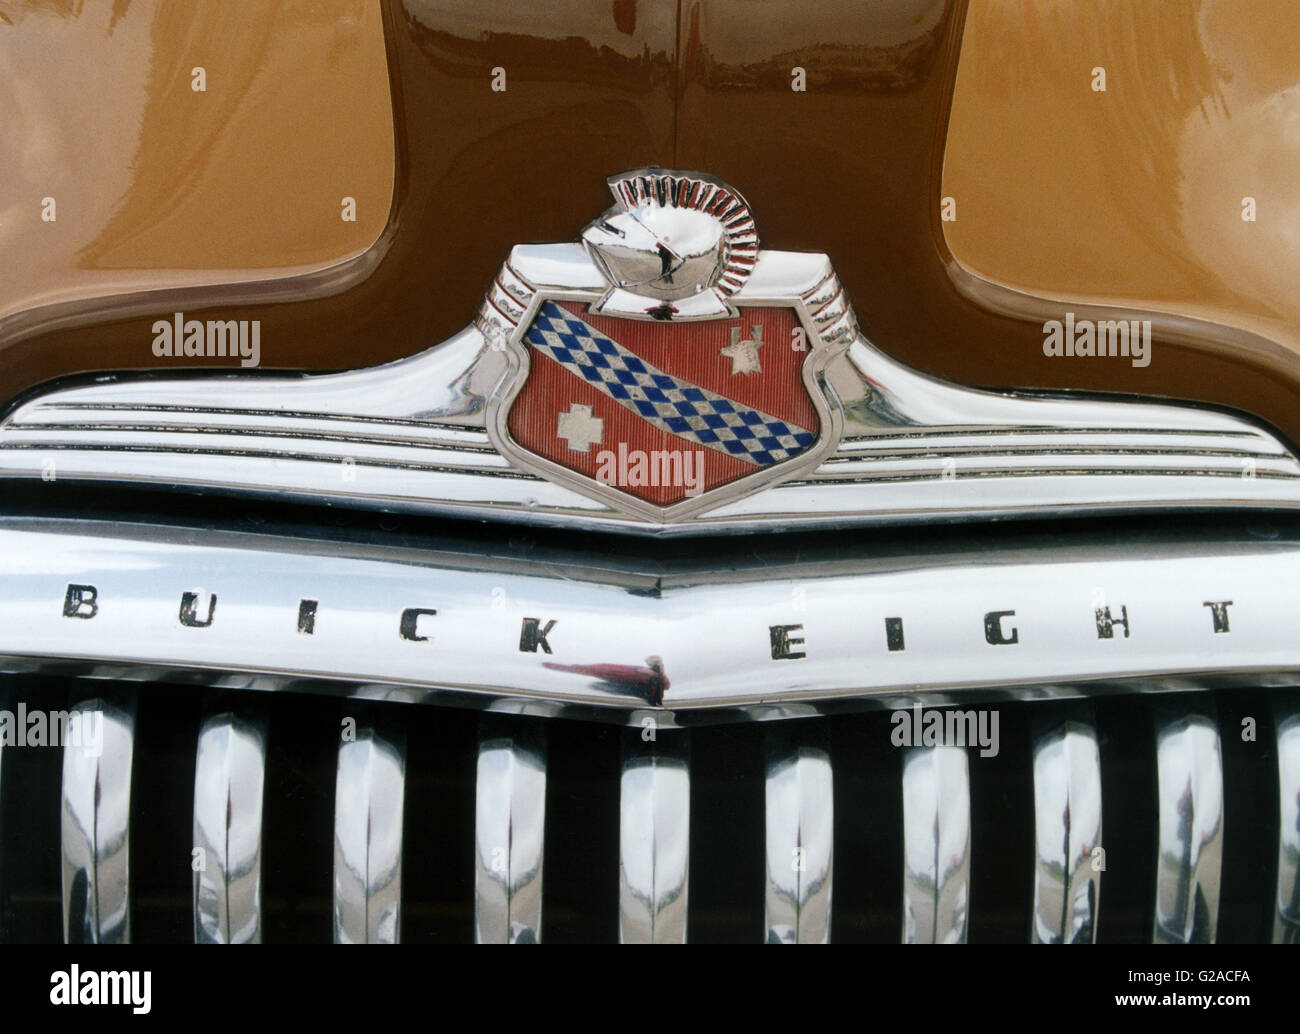 Bonnet badge for Buick - Stock Image